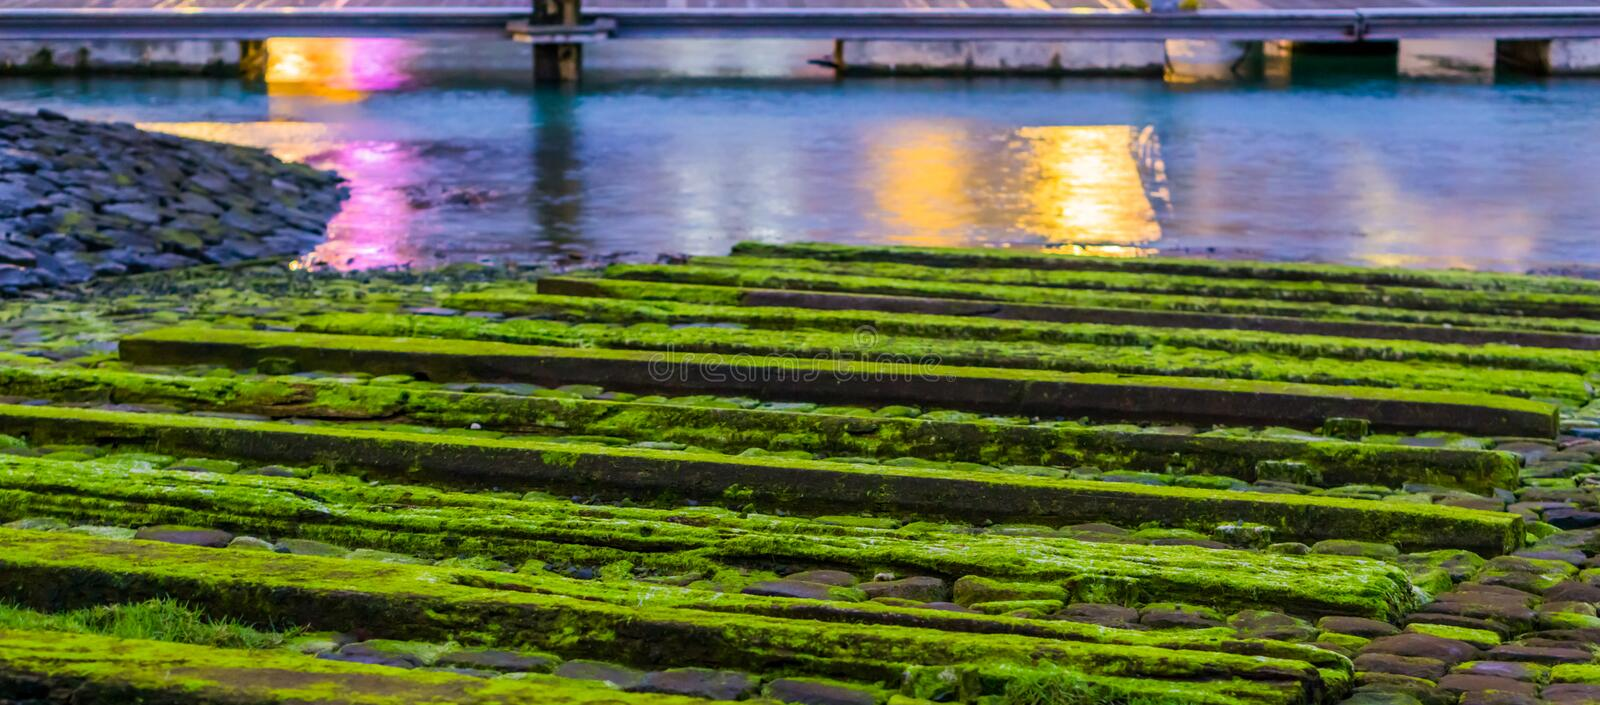 Wooden planks covered in moss, water landscape scenery, tranquil nature background royalty free stock image